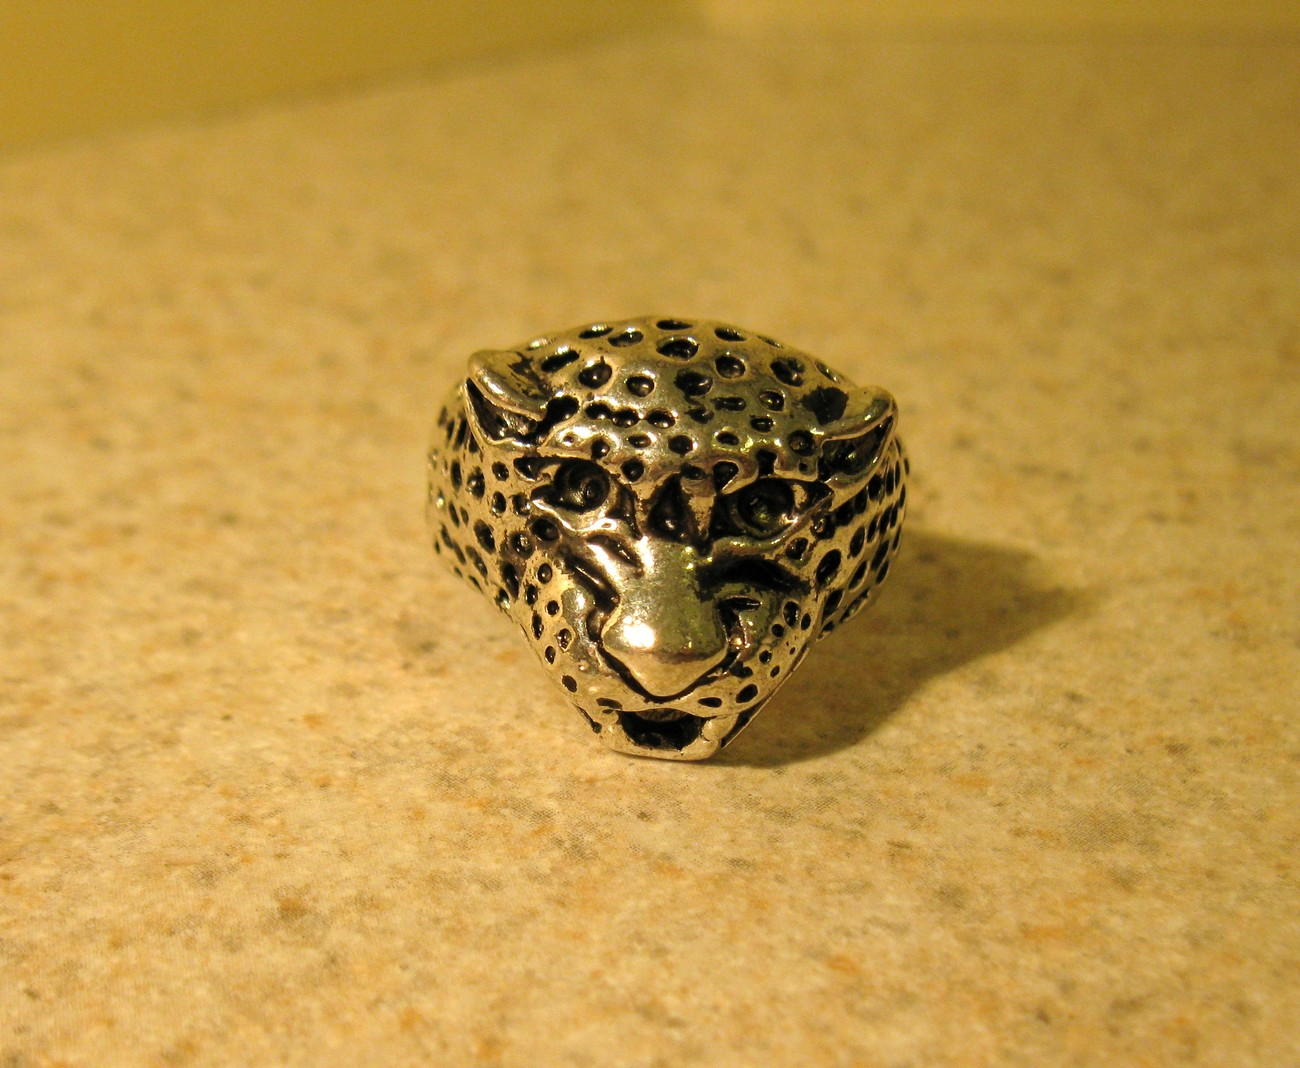 RING MEN WOMEN UNISEX STAINLESS STEEL SILVER LEOPARD 11 #73